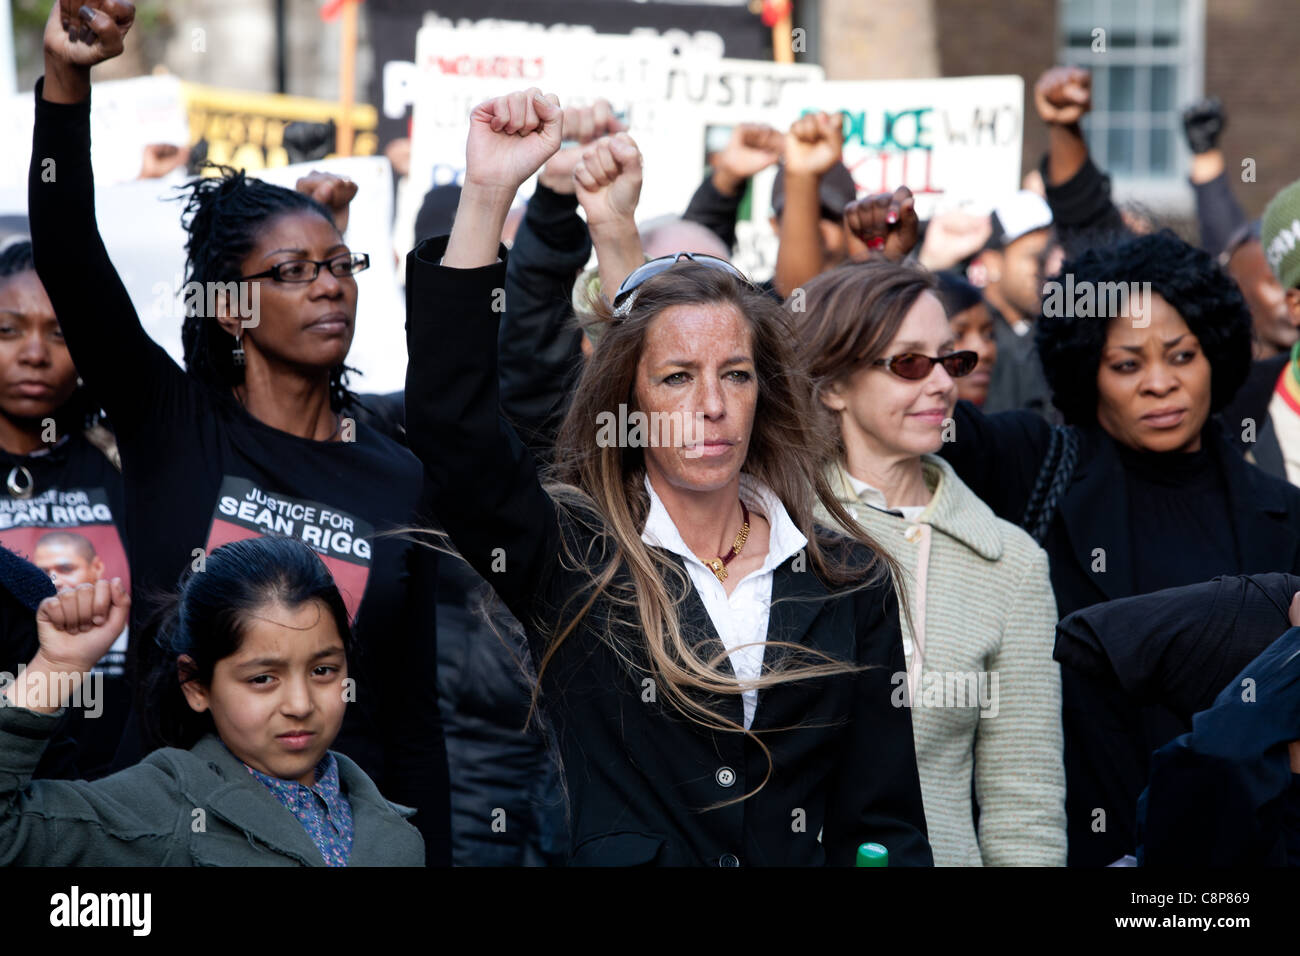 London, UK, 29/10/2011. NCAPV Protesters with their fists in the air in the manner of a 'Black power salute' - Stock Image